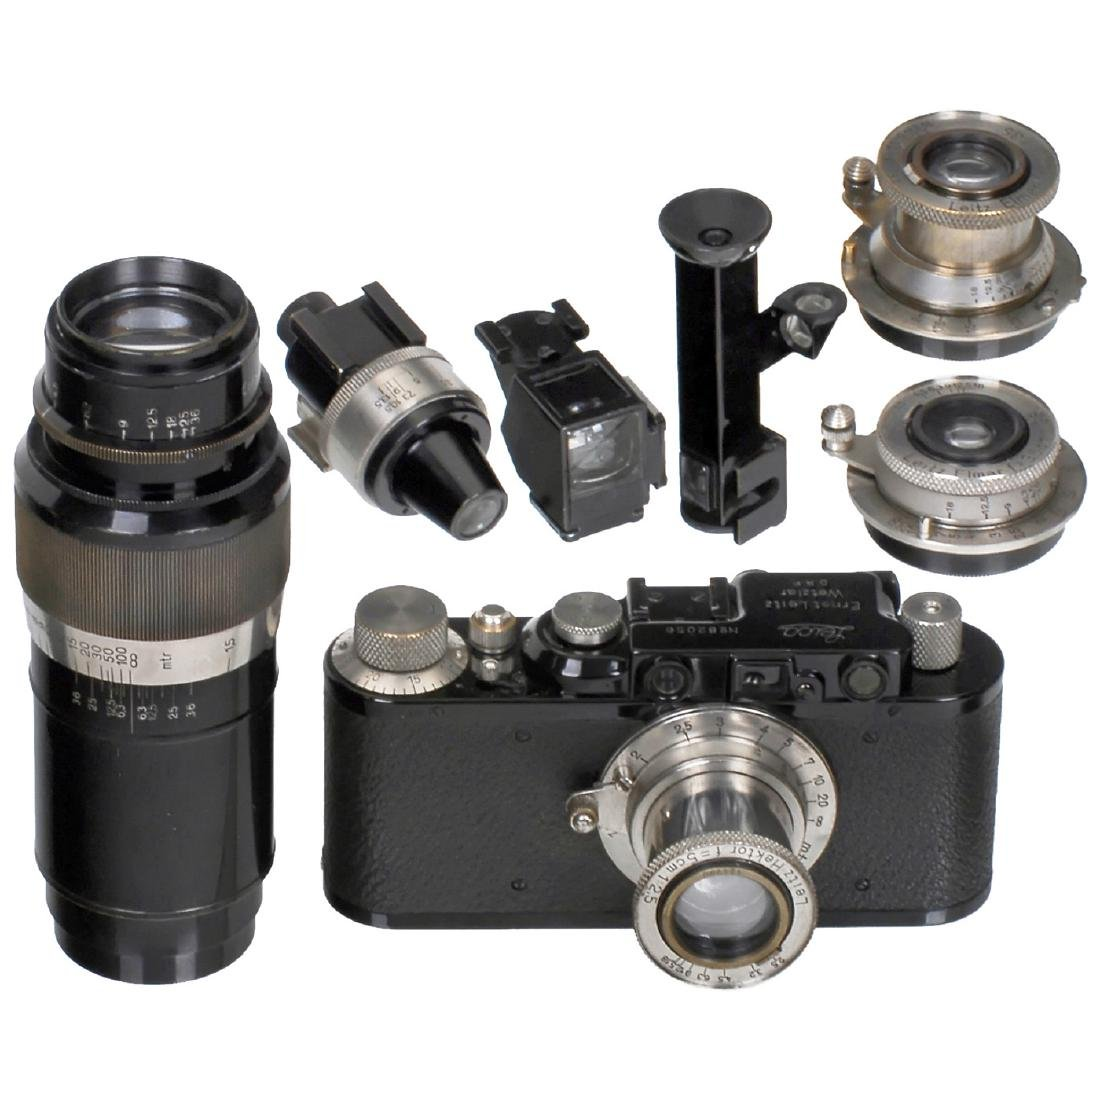 Leica II (D) Outfit, 1932